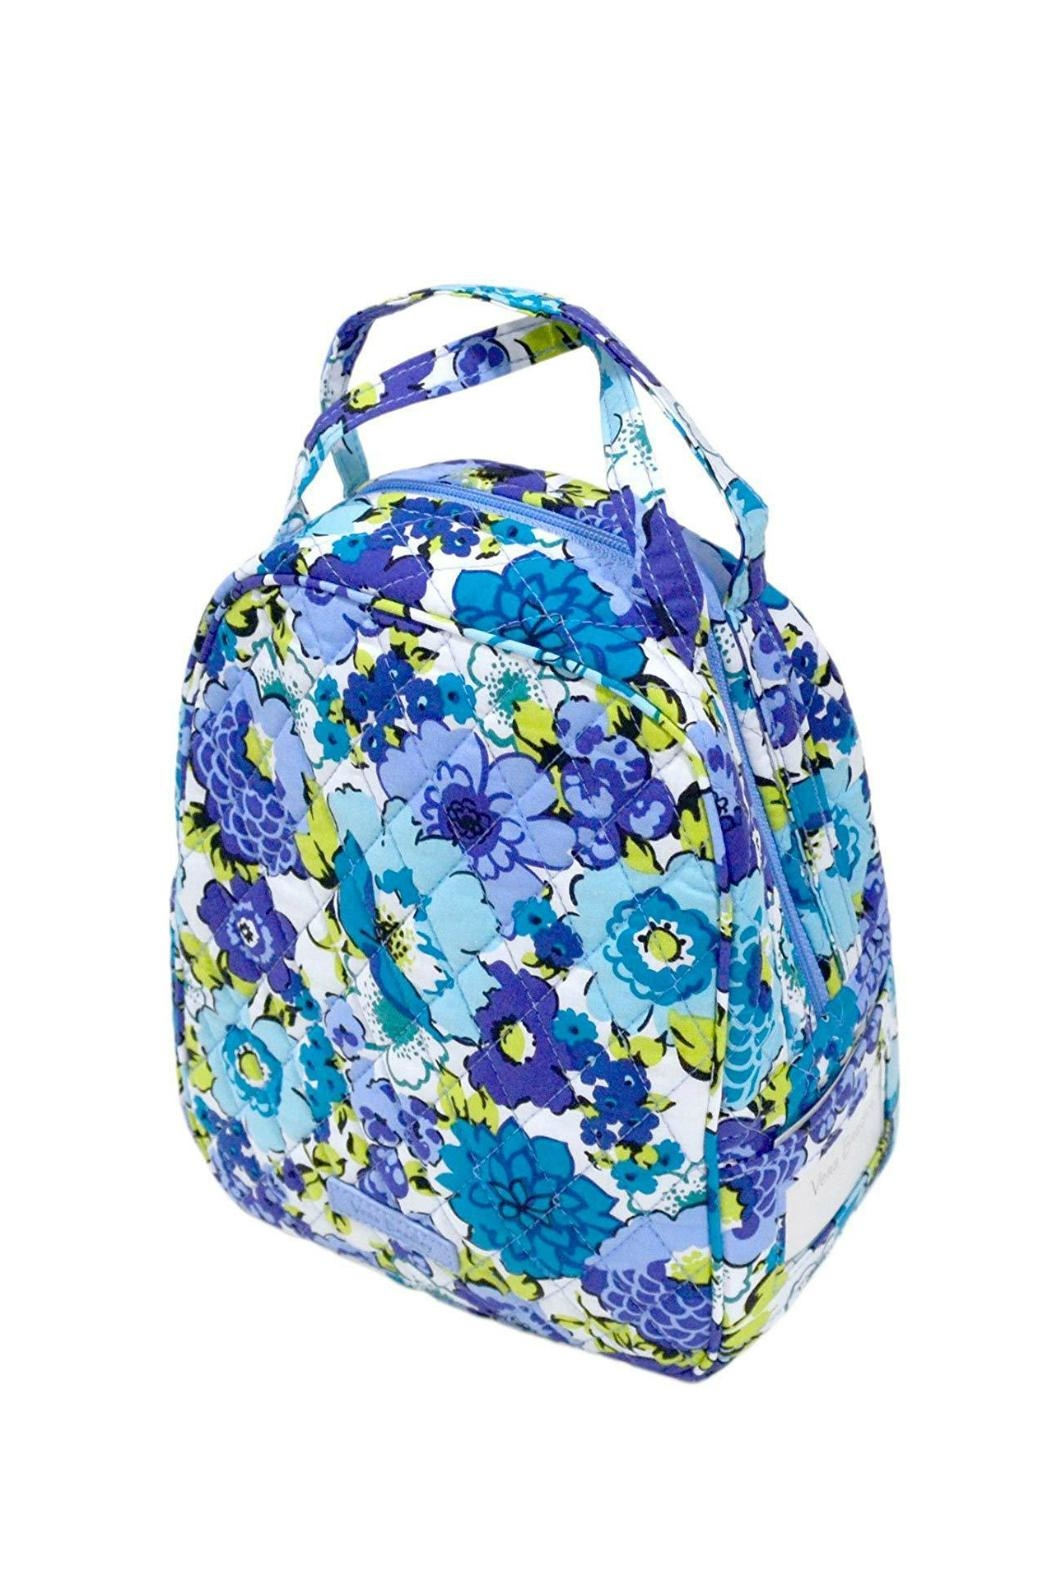 bdf2a160d5bc Vera Bradley Blueberry Blooms Lunch-Bunch from Kentucky by Mimi s ...